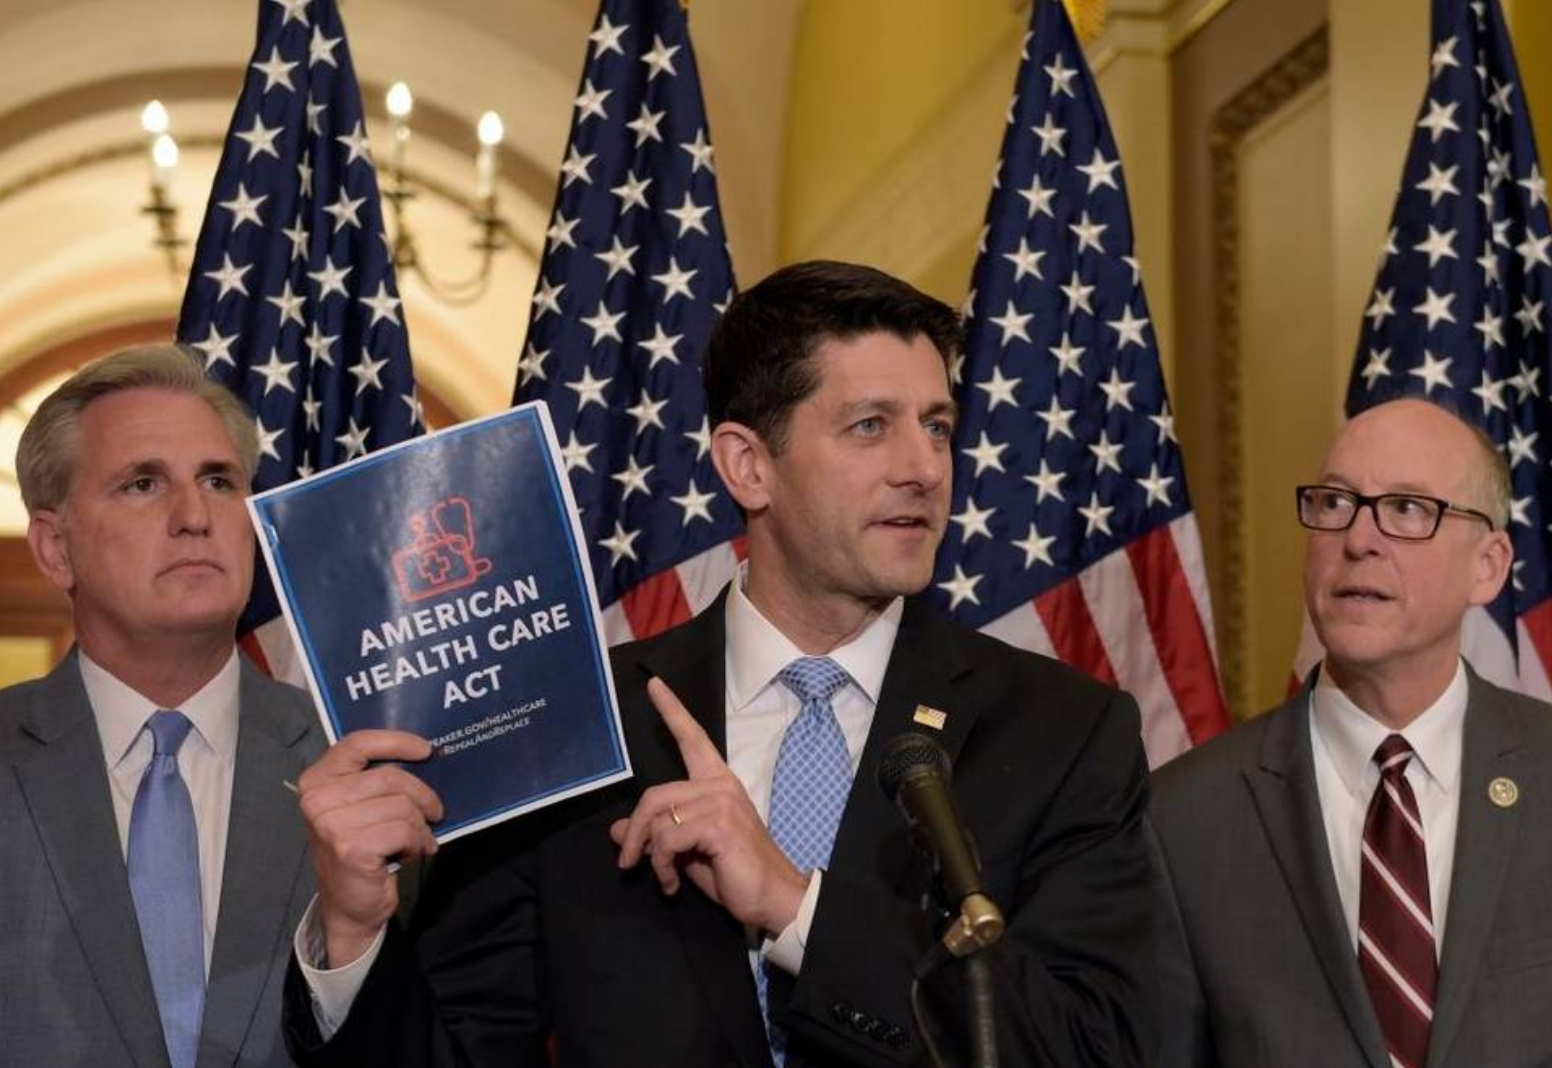 House Speaker Paul Ryan of Wisconsin, center, standing with Energy and Commerce Committee Chairman Greg Walden, R-Ore., right, and House Majority Whip Kevin McCarthy, R-Bakersfield, left, speaks during a news conference on the American Health Care Act on Capitol Hill in Washington March 7, 2017. Susan Walsh AP